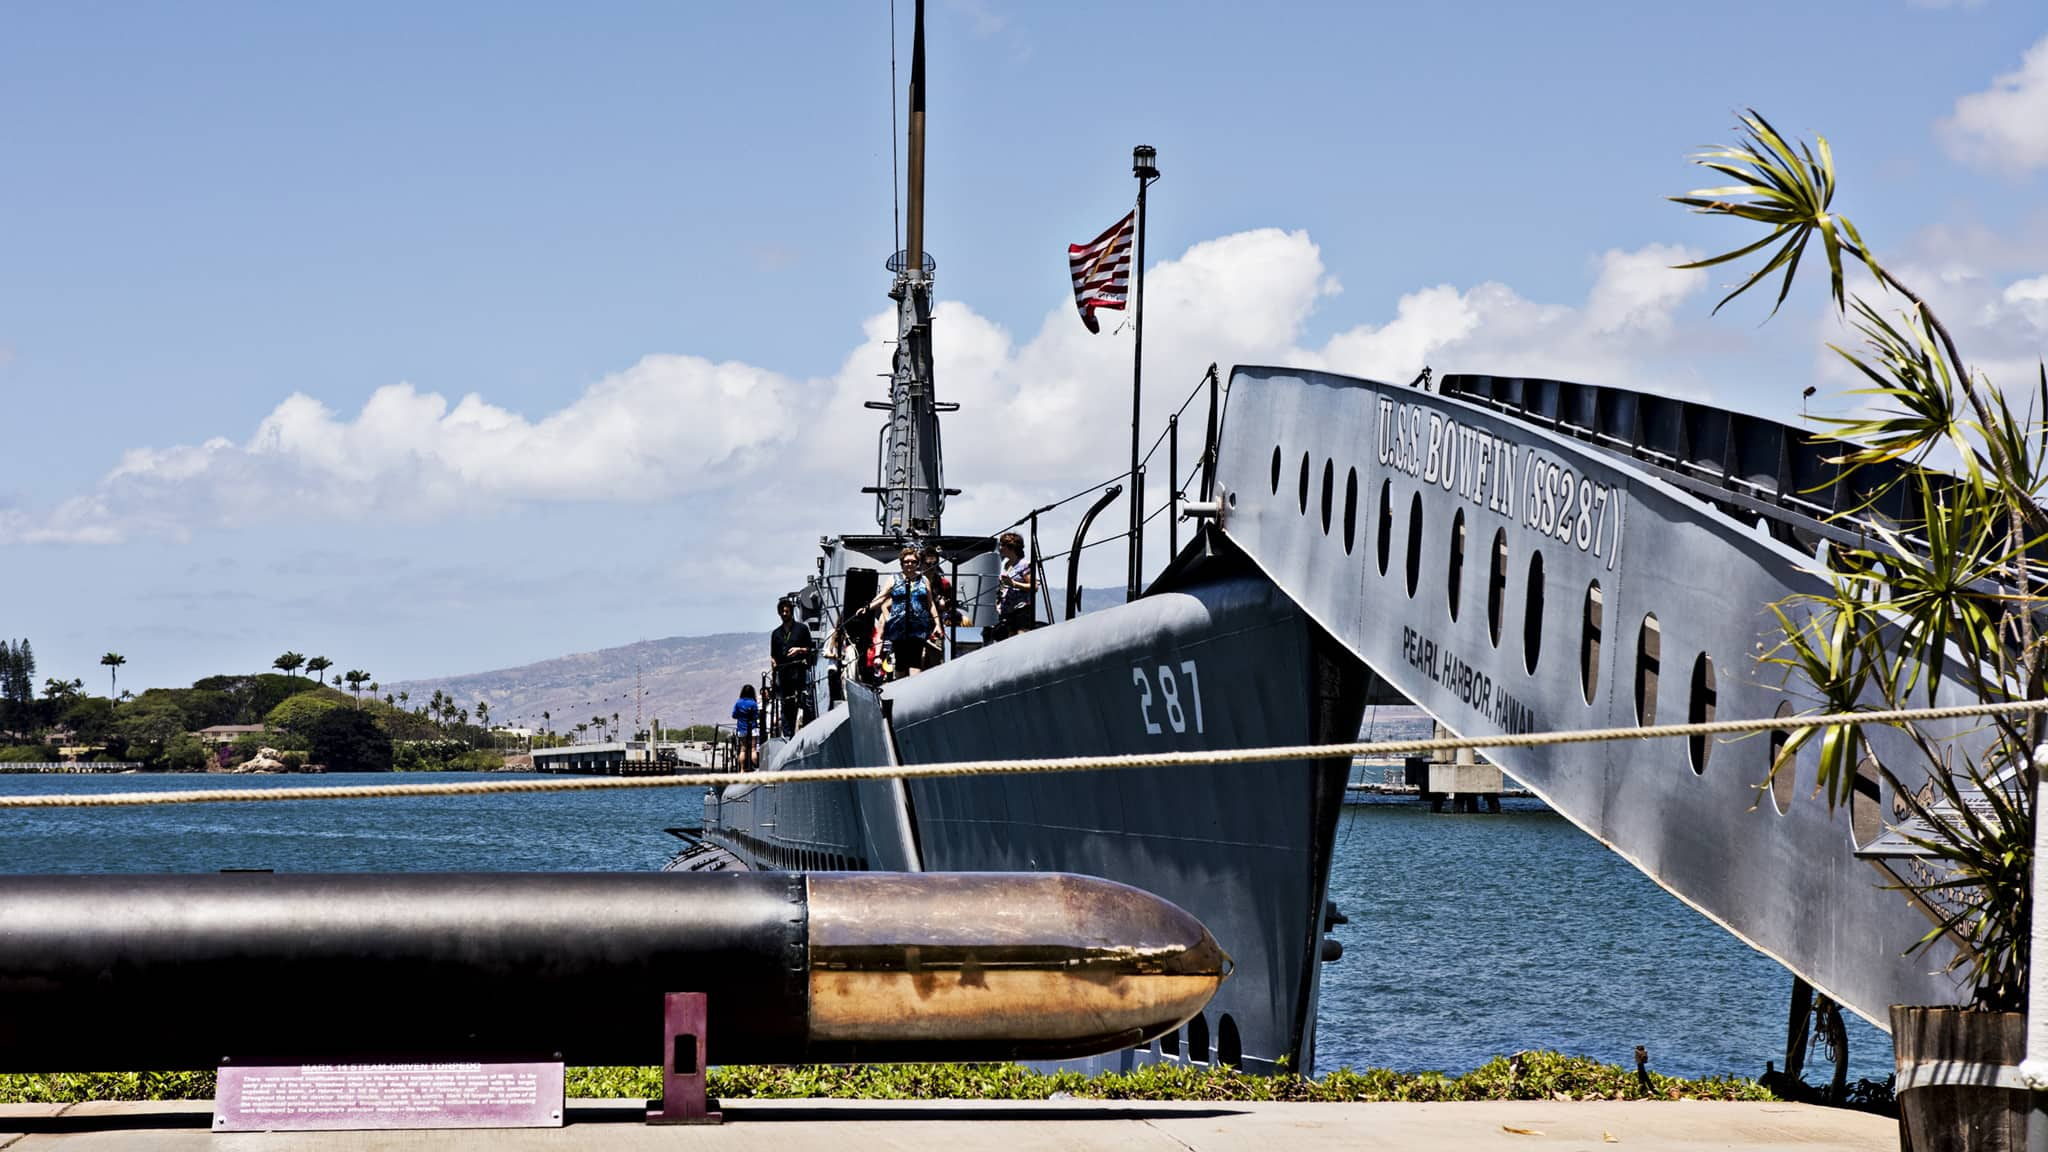 The USS Bowfin Submarine Museum and Park at Pearl Harbor